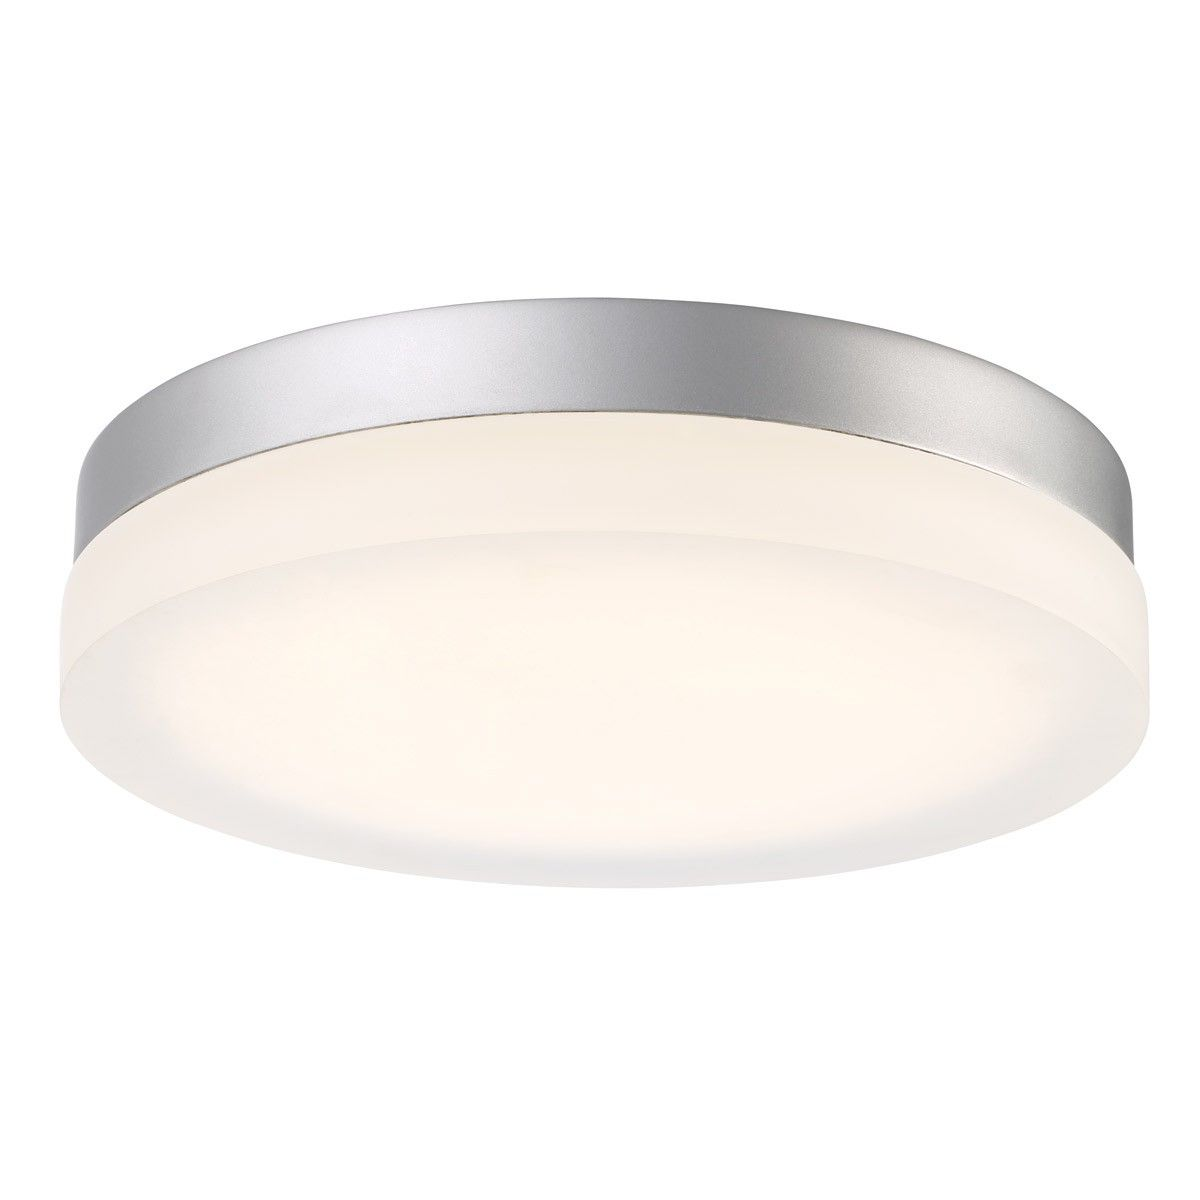 Circa 15 inch led ceiling light surface mount ceiling lights circa 15 inch led ceiling light arubaitofo Image collections